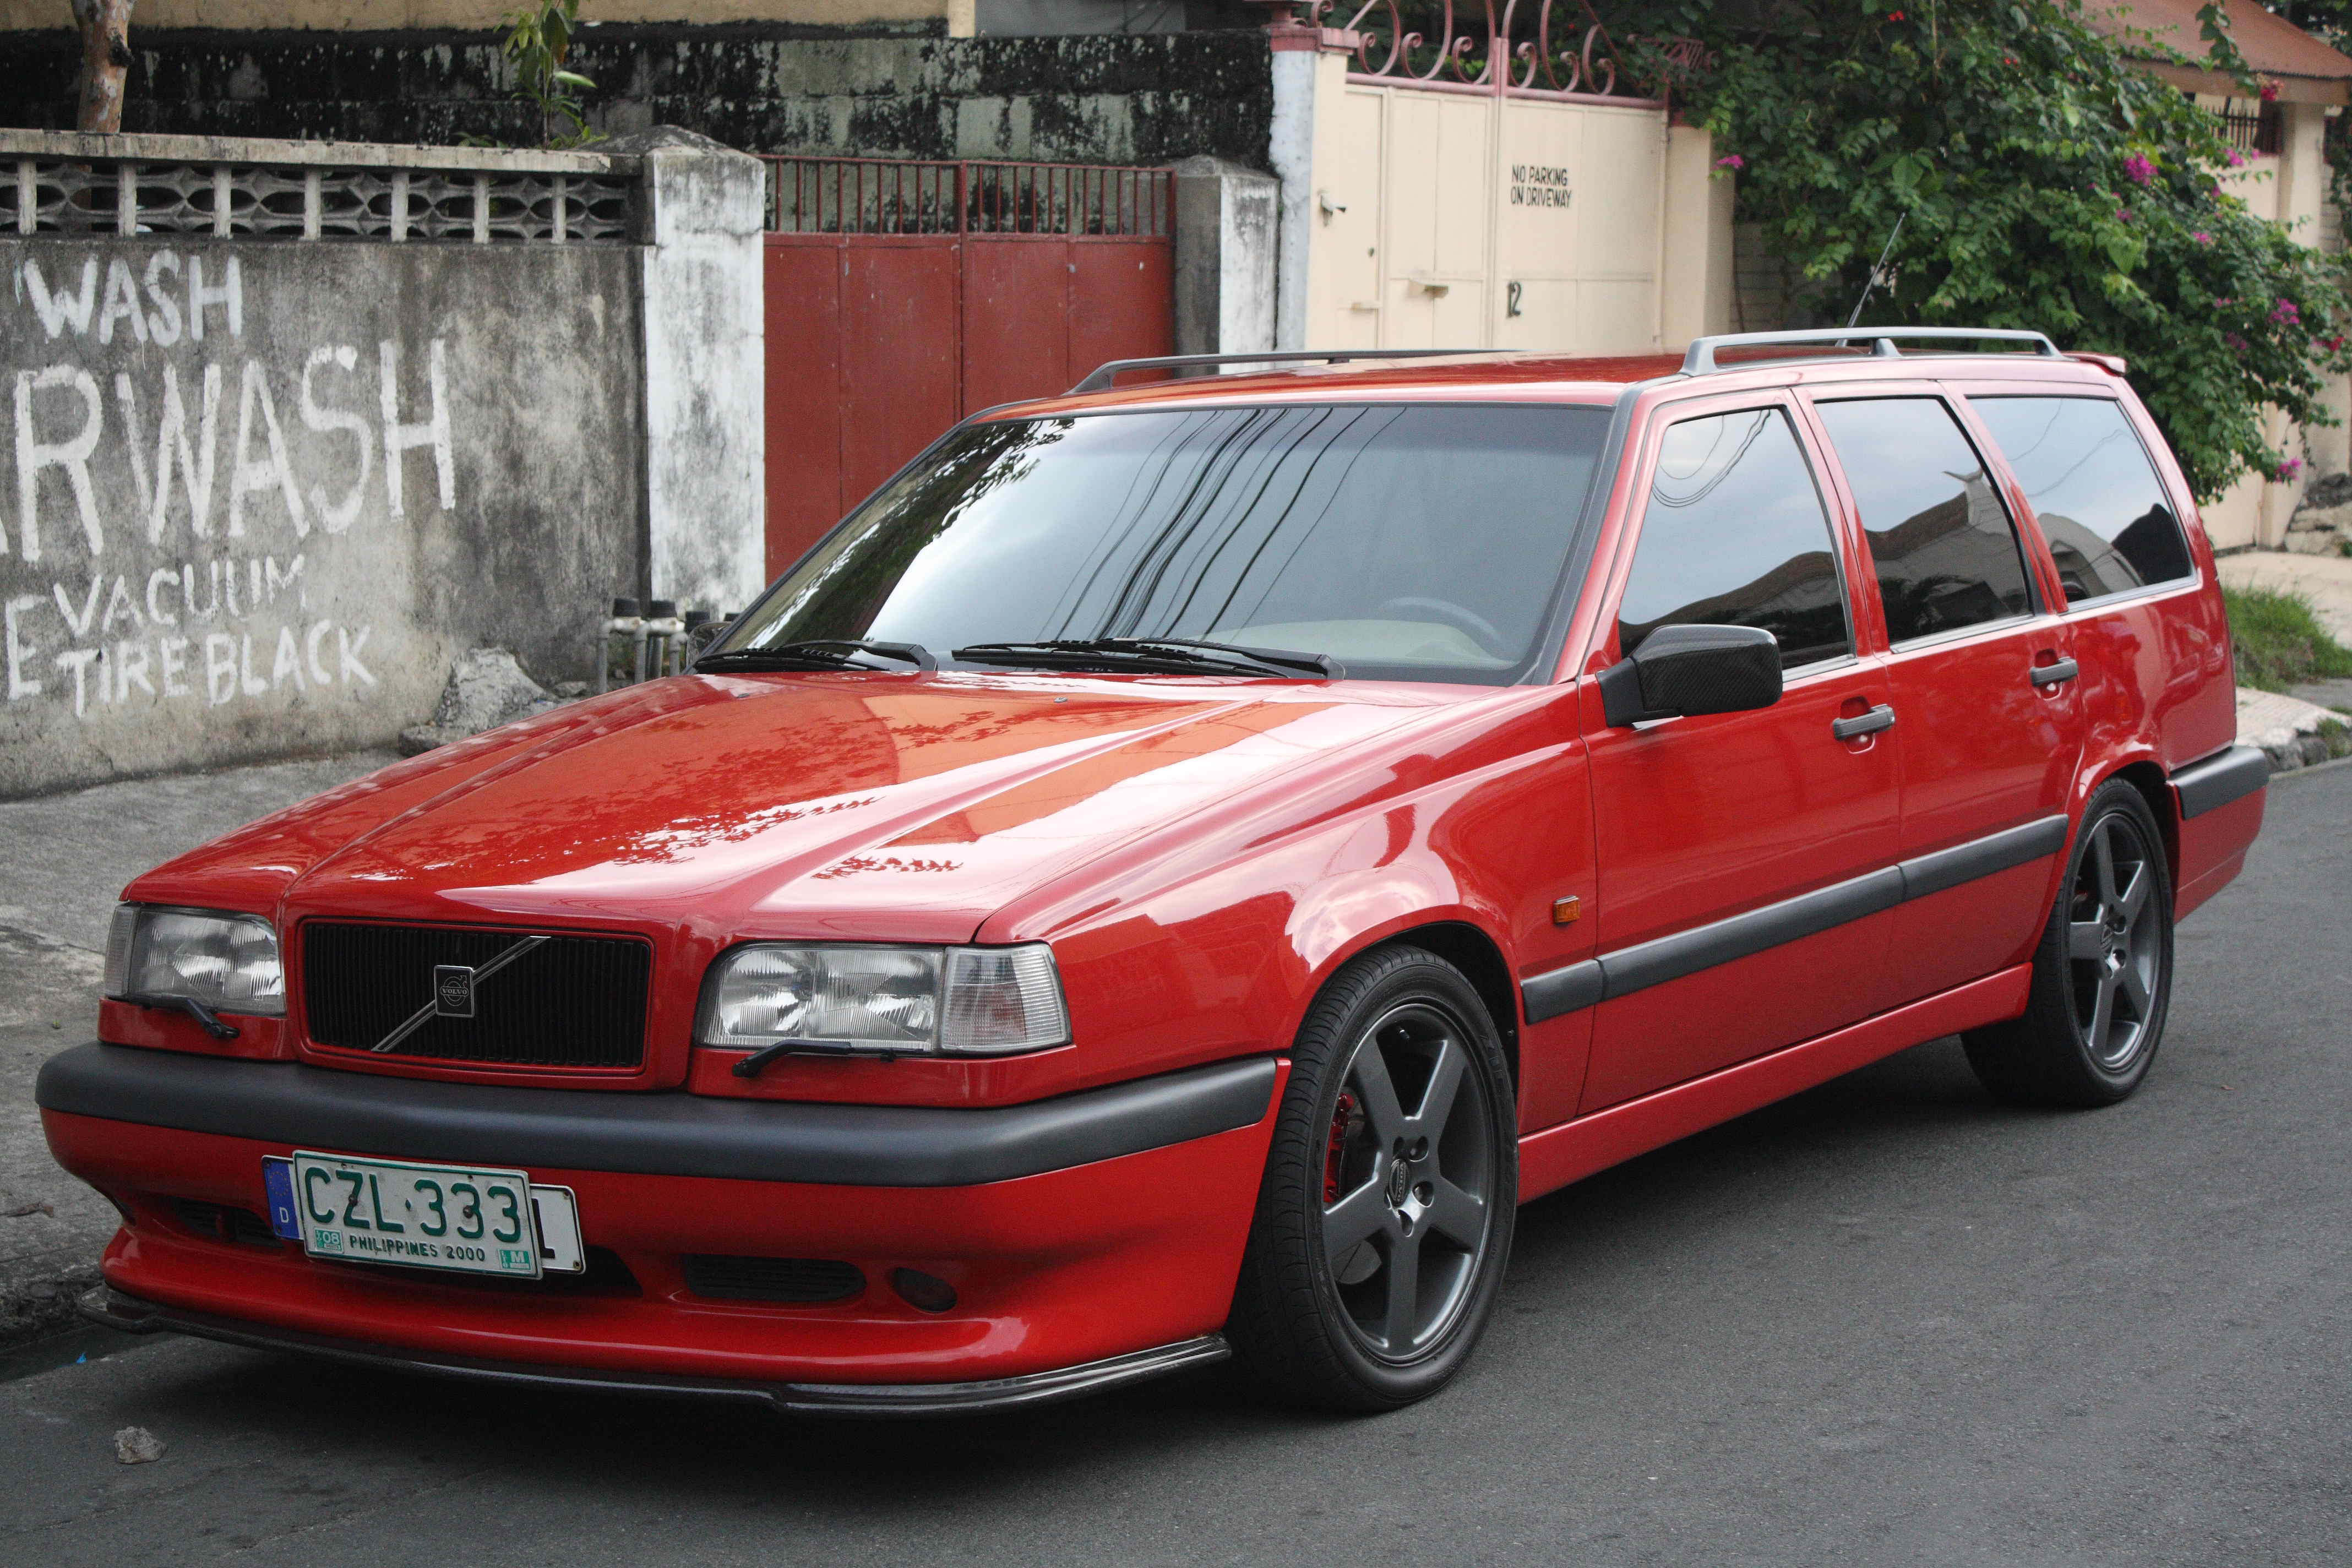 1996 Volvo 850 together with 17810 likewise 10 Nifty Things You Probably Missed On moreover 12549823664 moreover Conference Hotel Prague. on car sound set up